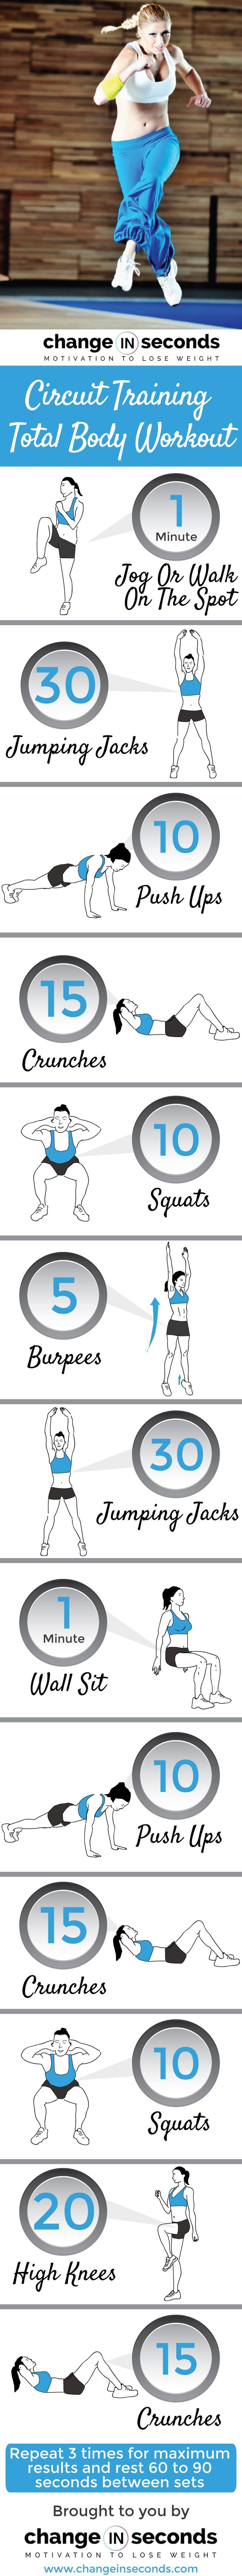 Circuit Training Total Body Workout (Download PDF) https://www.changeinseconds.com/circuit-training-total-body-workout/